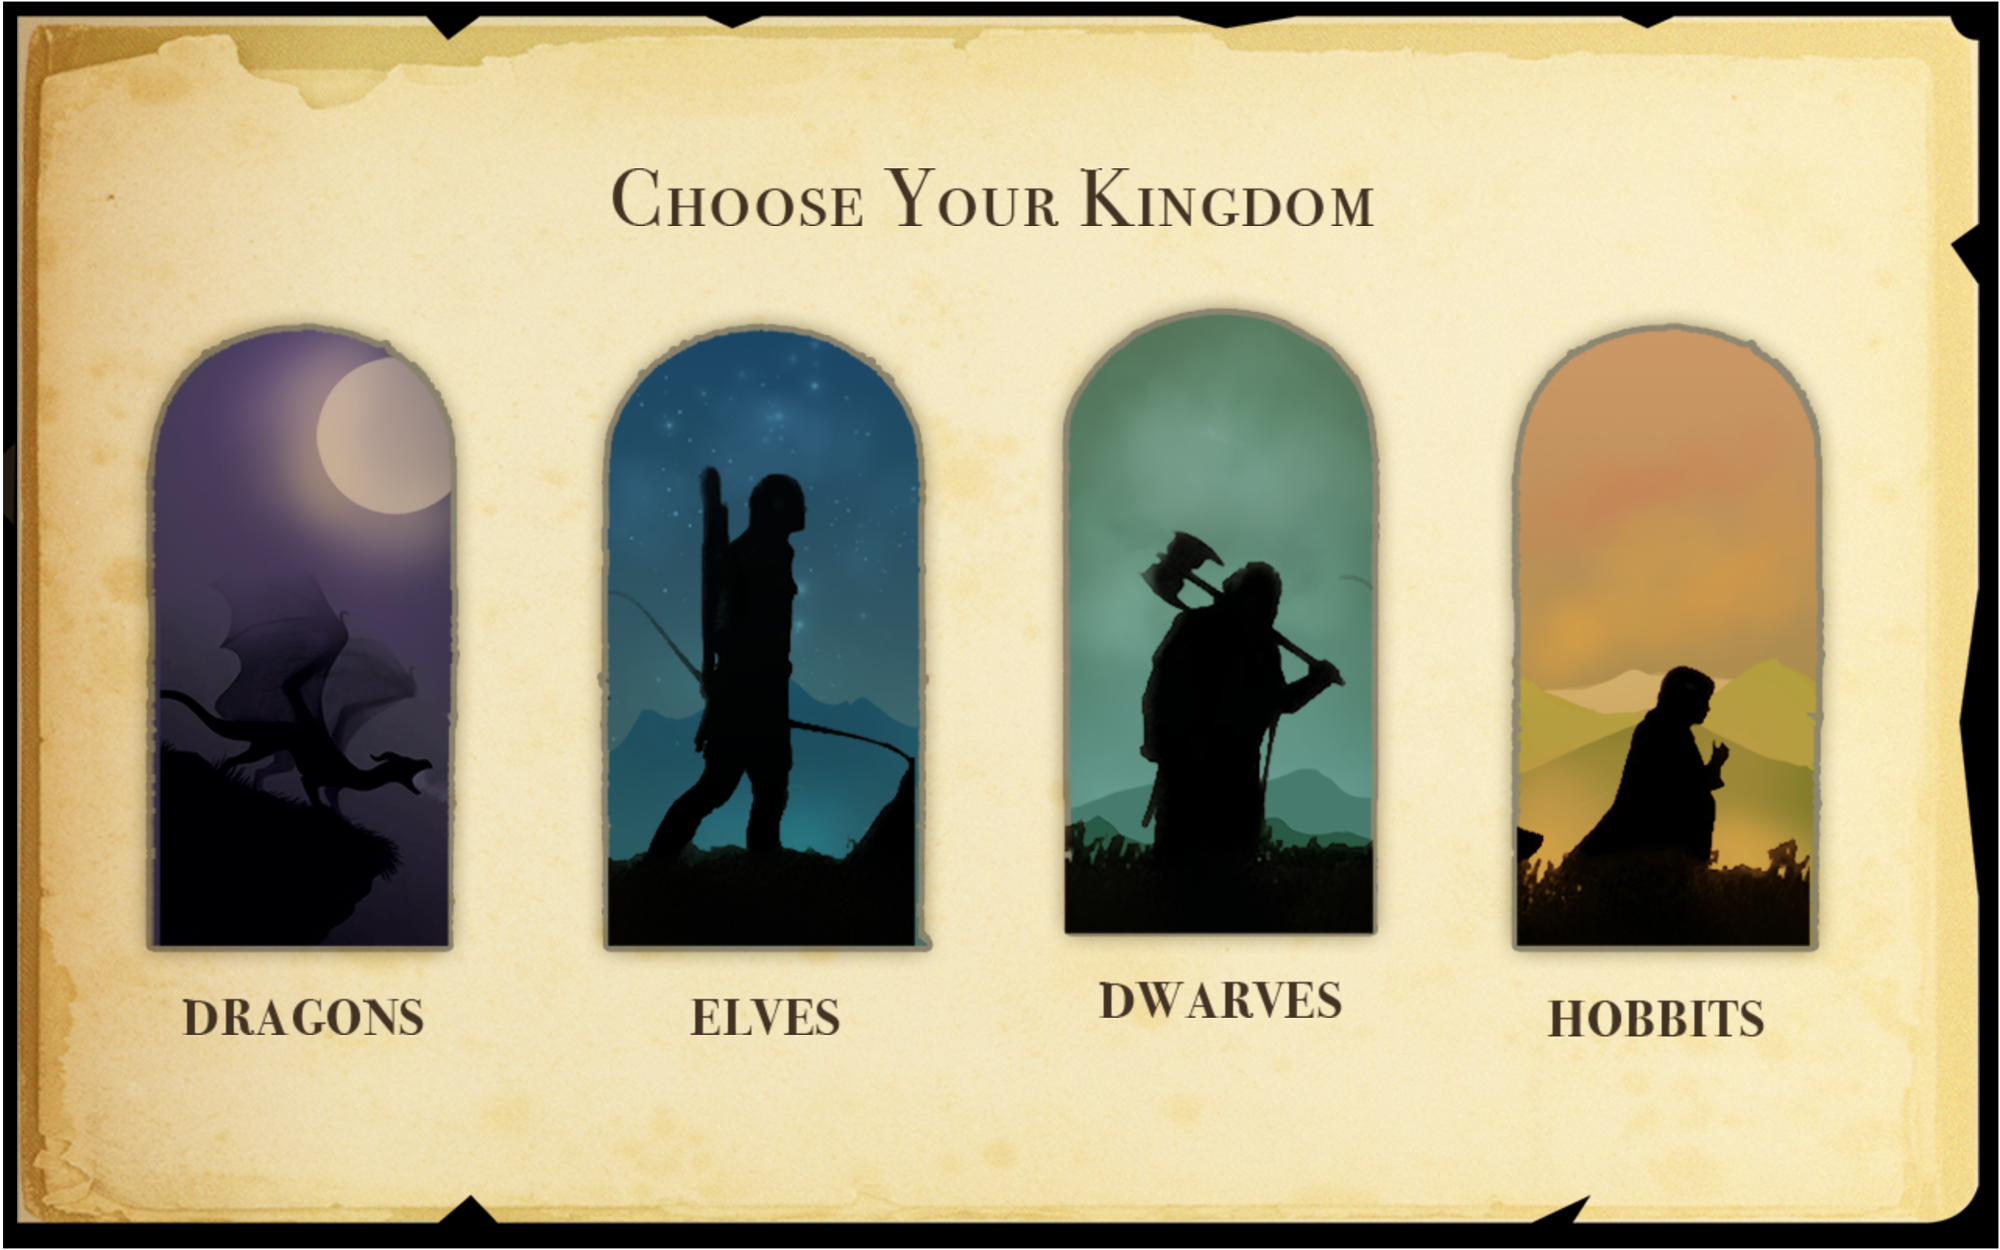 2. Choose Your Kingdom